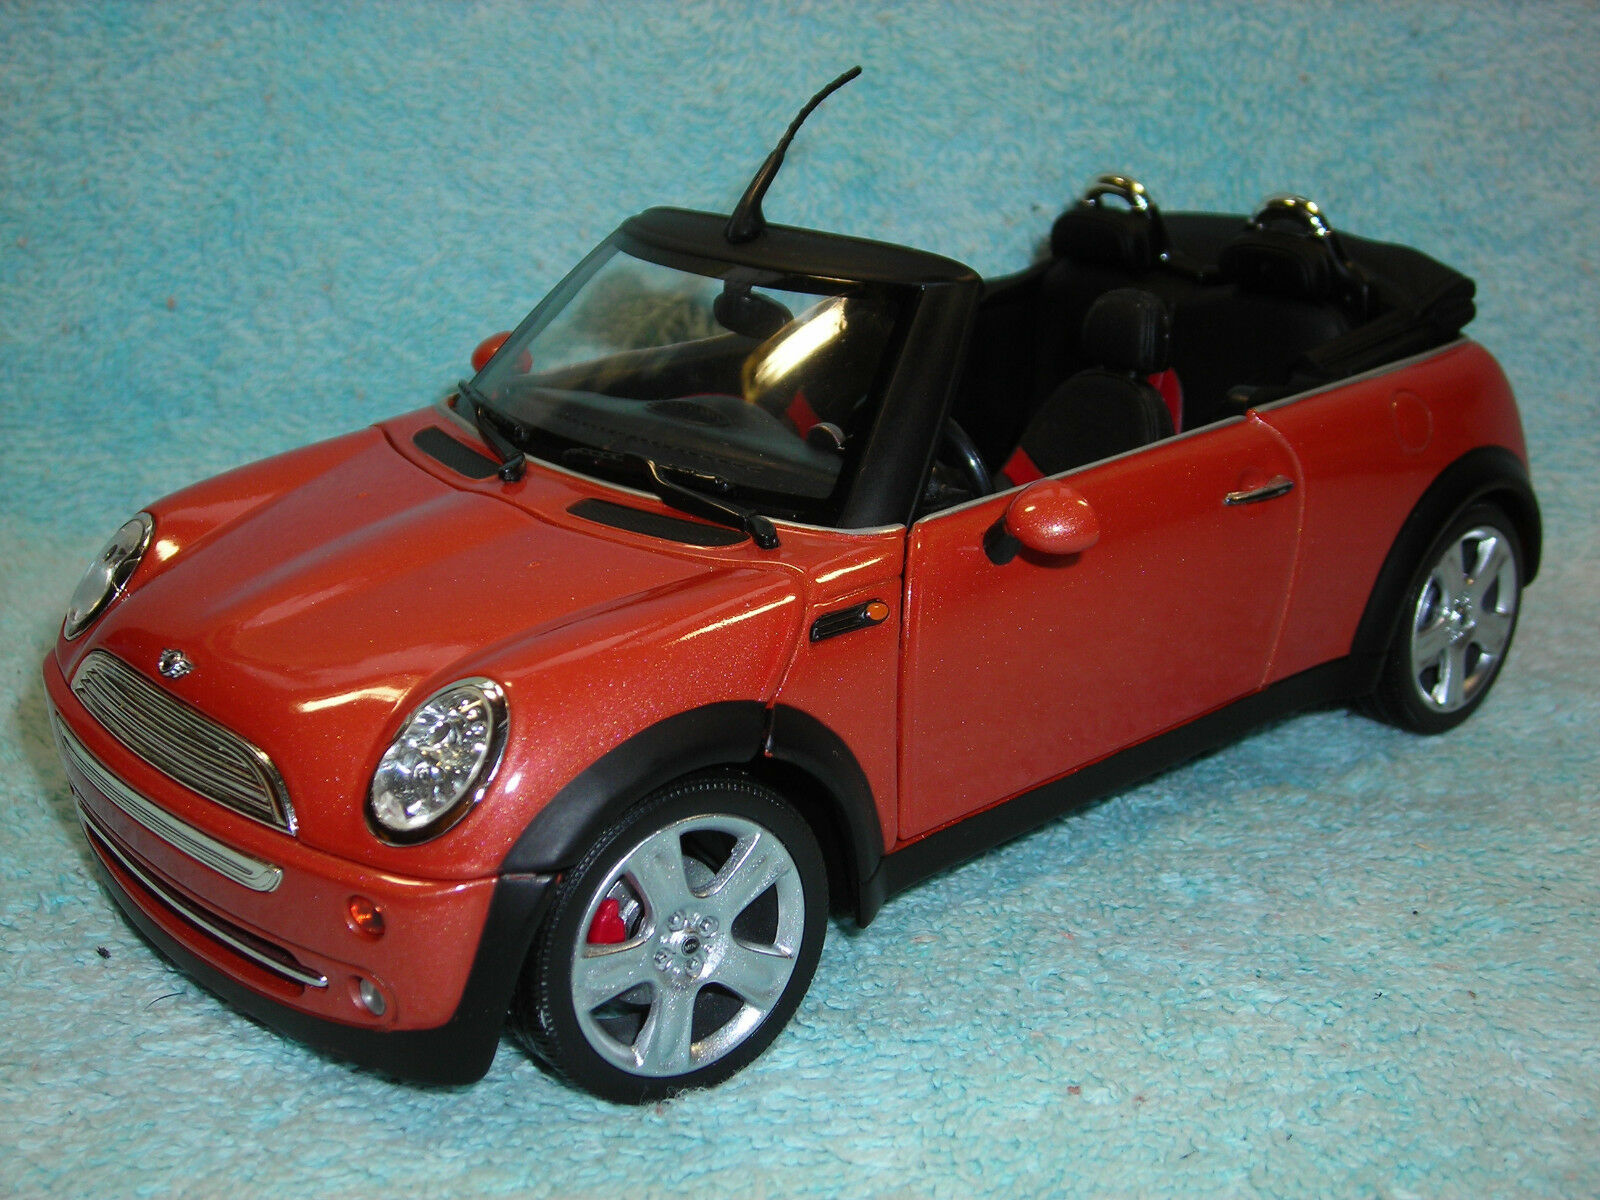 1   18 - skala mini cooper cabrio in metallic - druckguss 2003 korallen von 100% hot wheels.